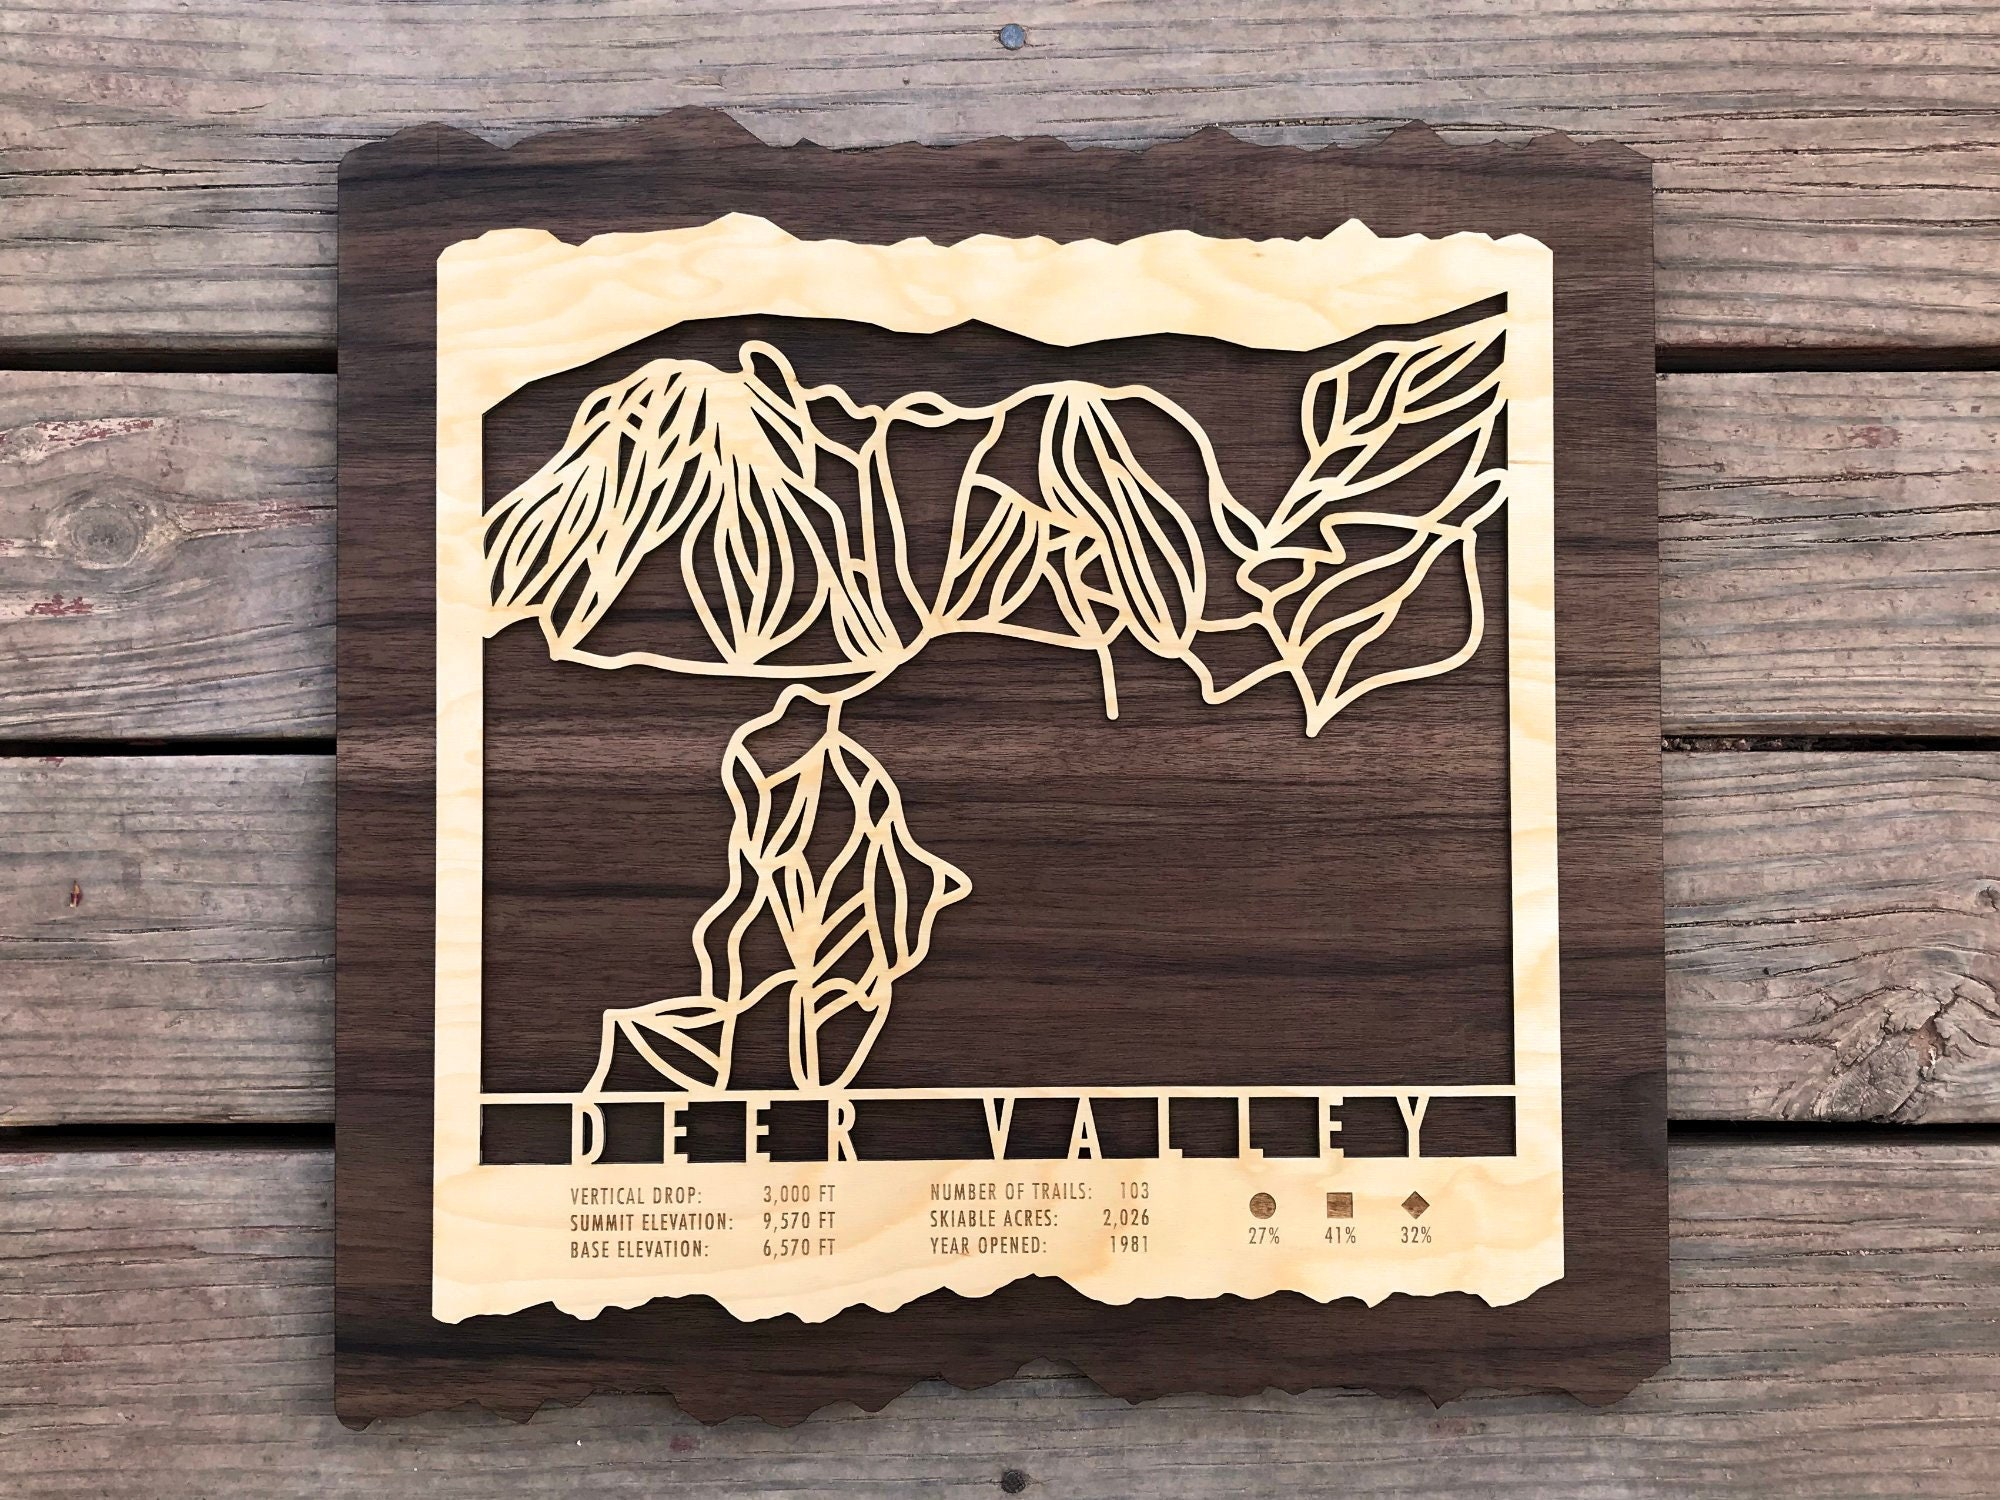 Deer Valley Ski Map Art - Trail Map Cut from Wood on